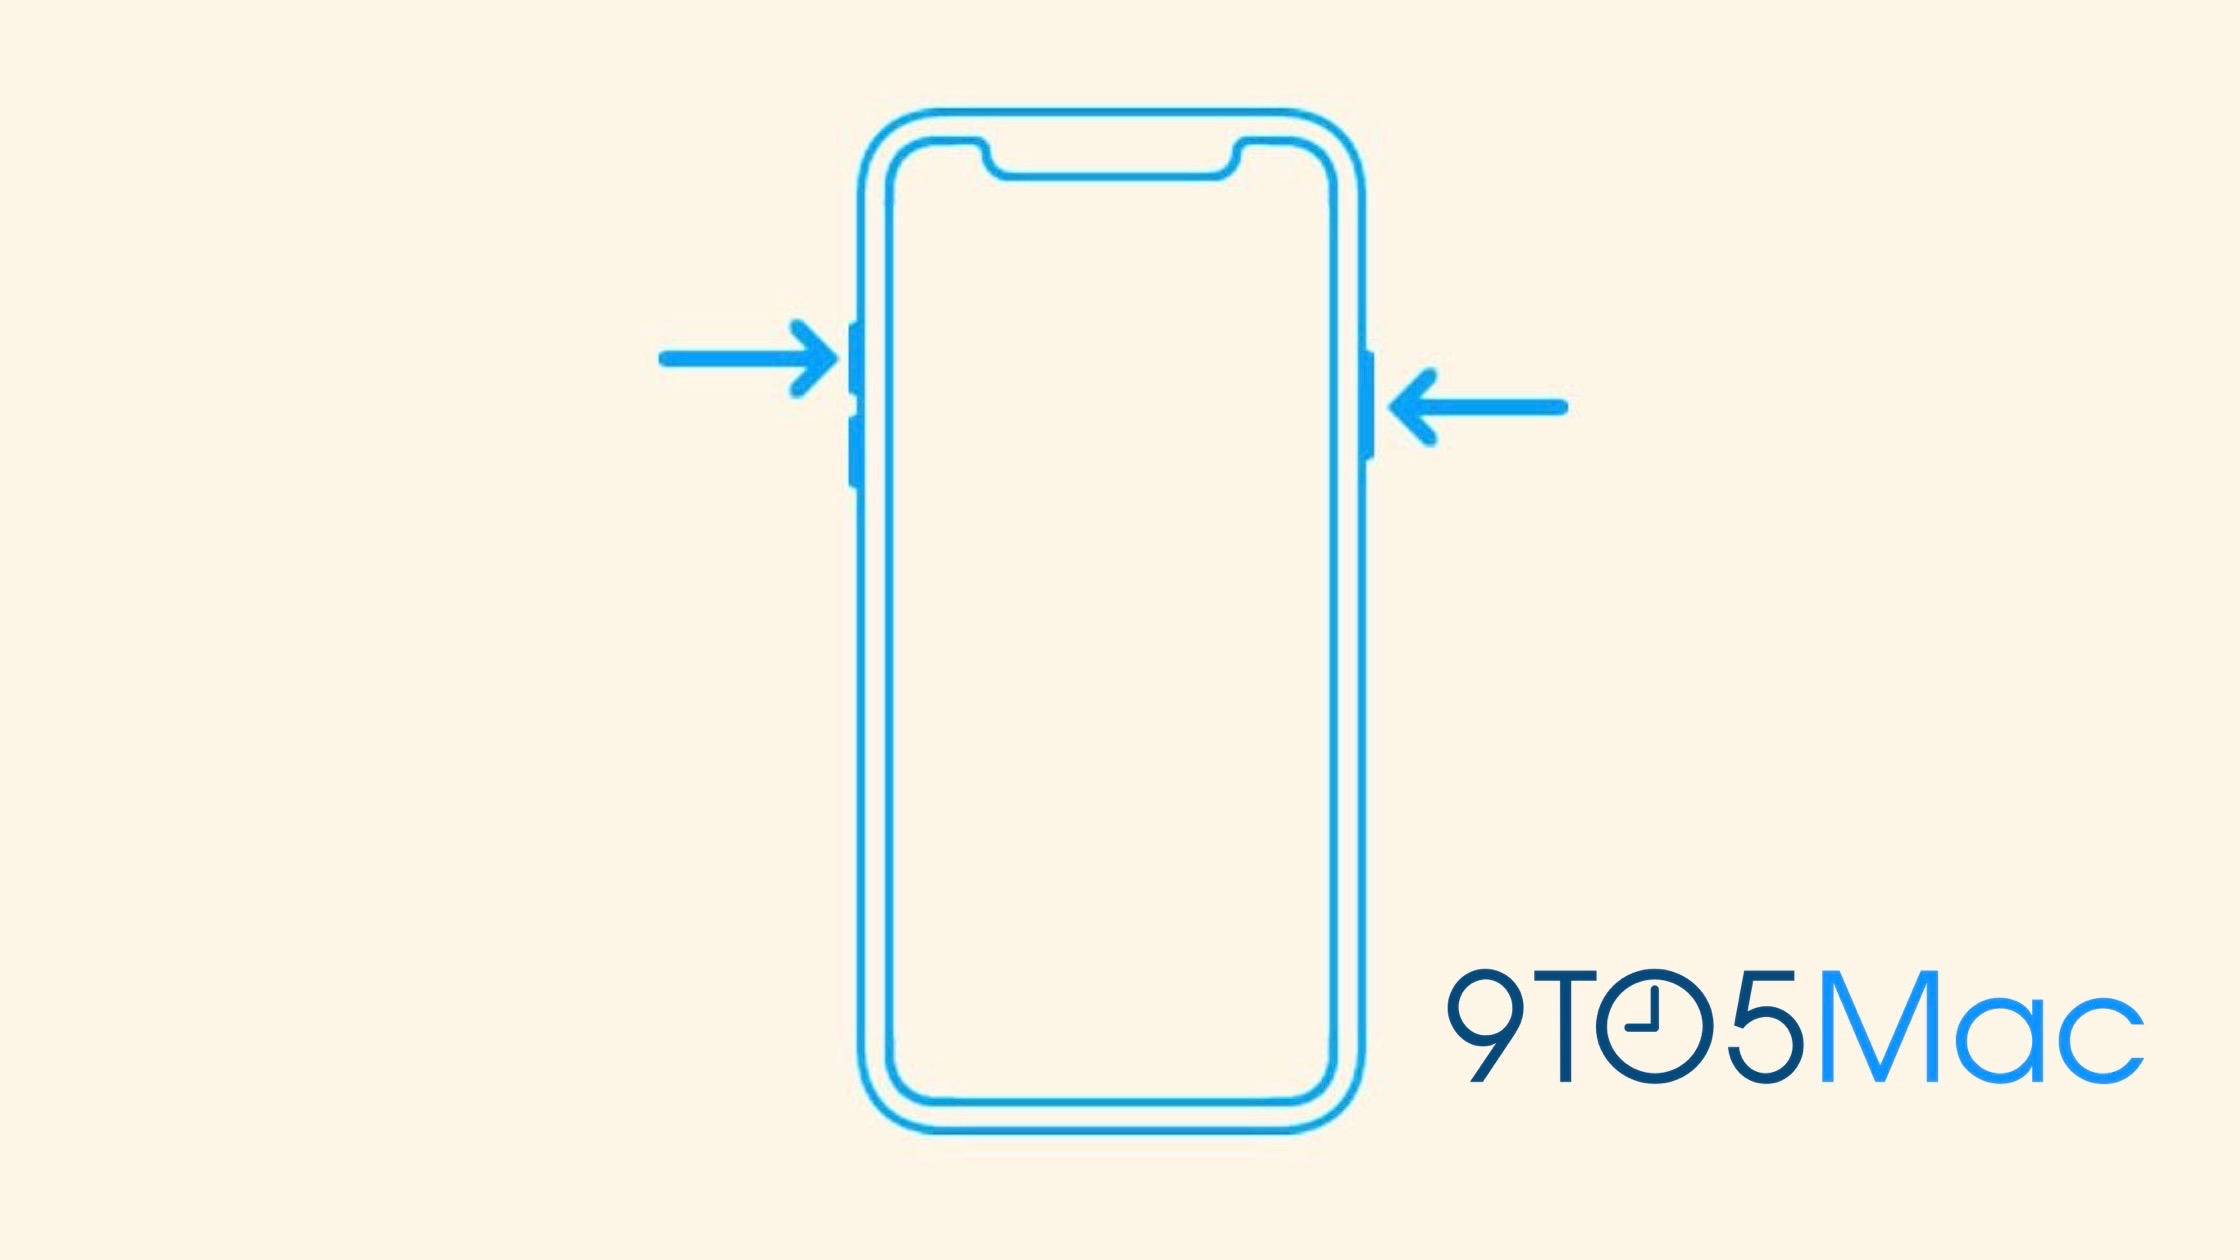 iOS 11 GM leak confirms D22 'iPhone X' features: Portrait Lighting, True Tone Display, revised AirPods, much more